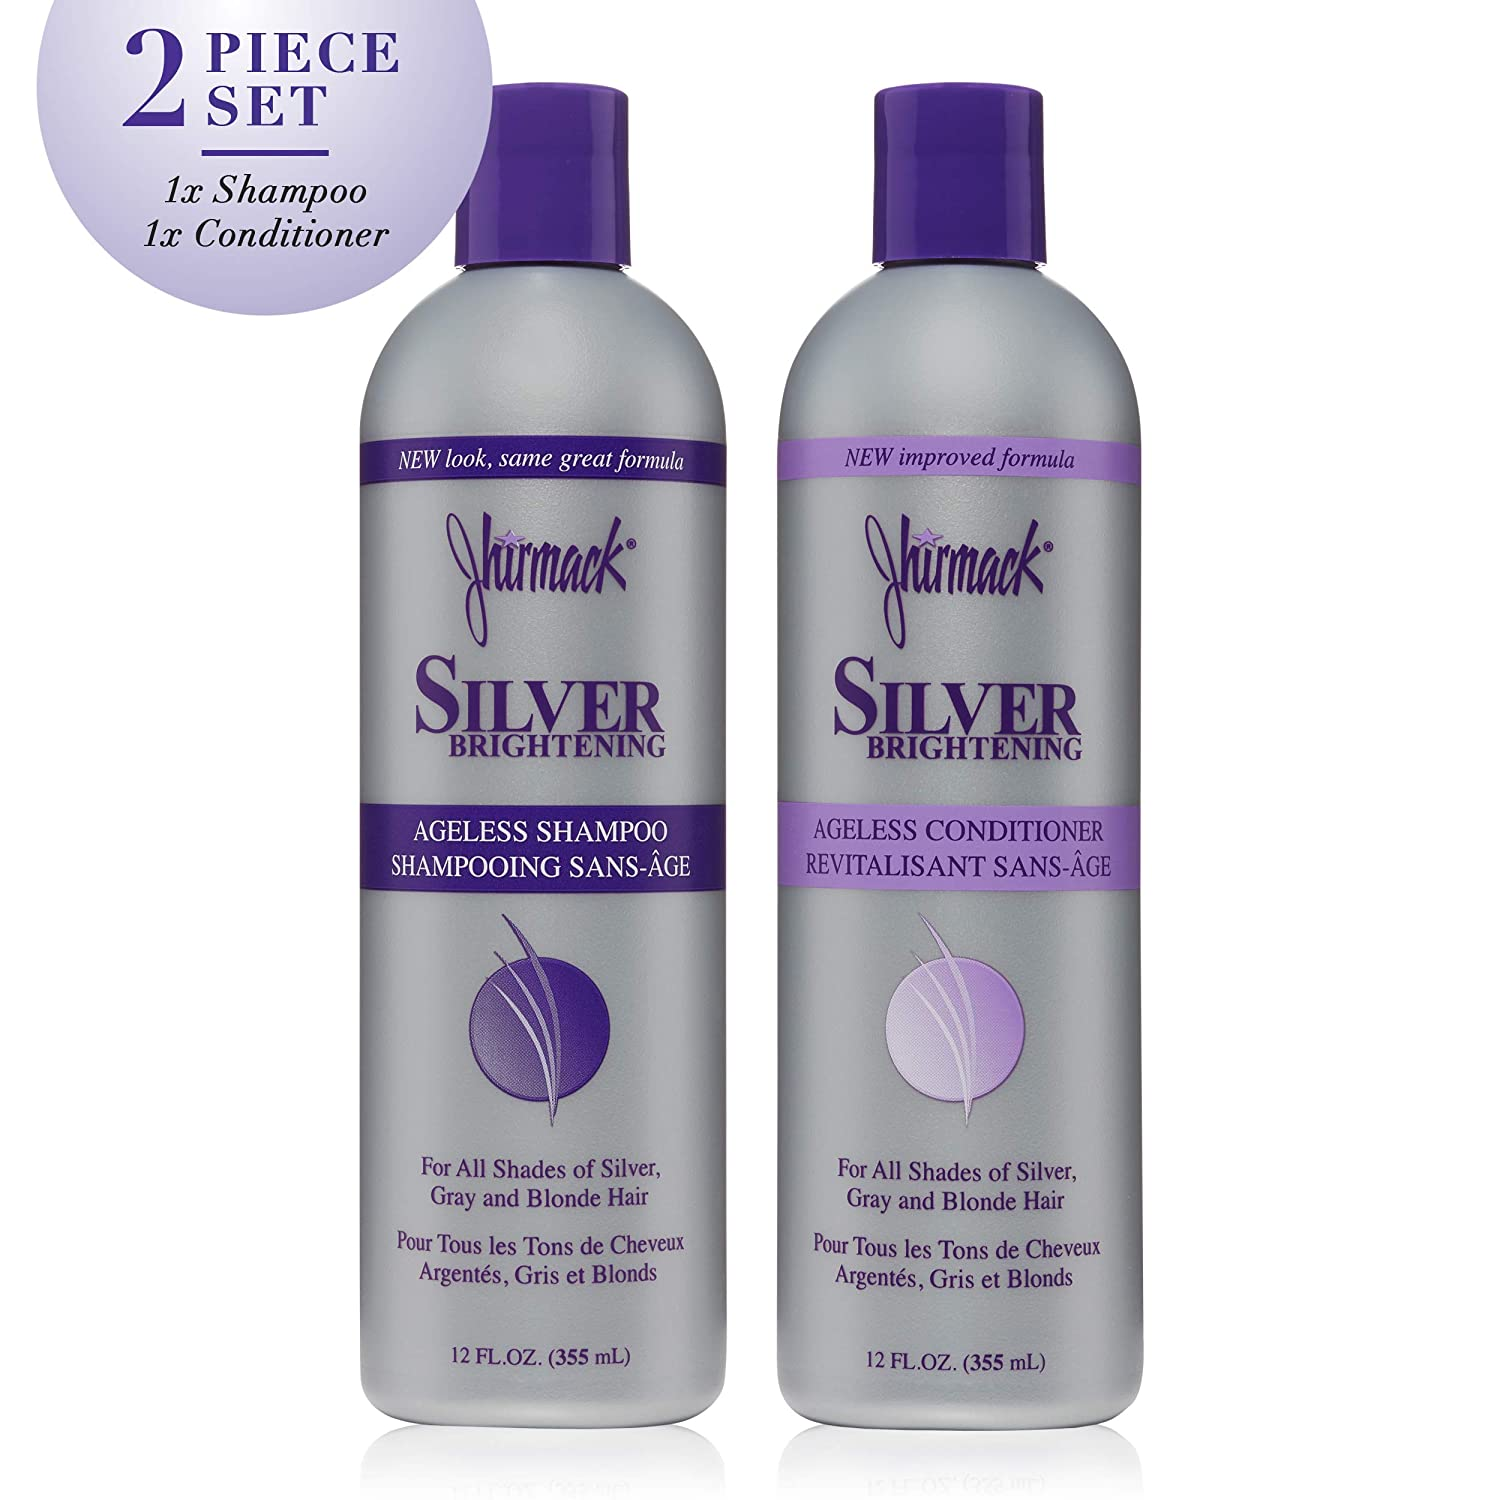 Jhirmack Silver Brightening Ageless Purple Shampoo Set of 2 developed for all shades of silver, gray, and blonde hair and enhance highlights - 1 Shampoo + 1 Conditioner